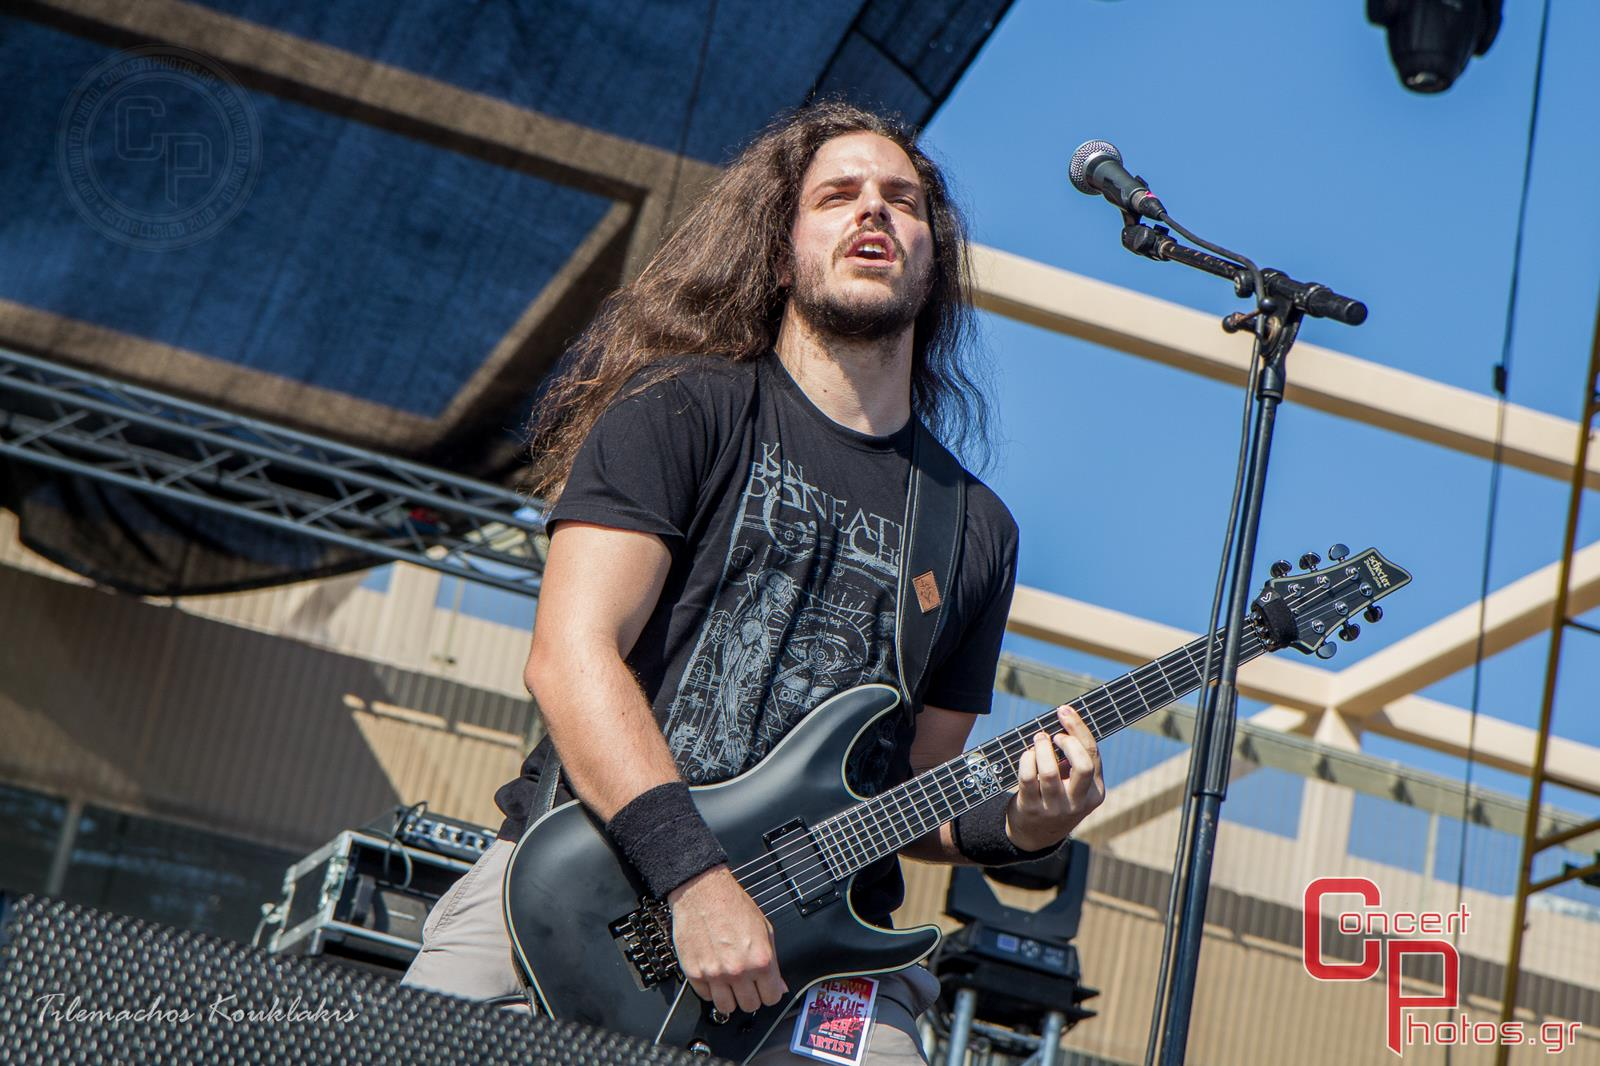 Heavy By The Sea 2014-Heavy By The Sea 2014 photographer:  - concertphotos_20140627_09_10_44-2